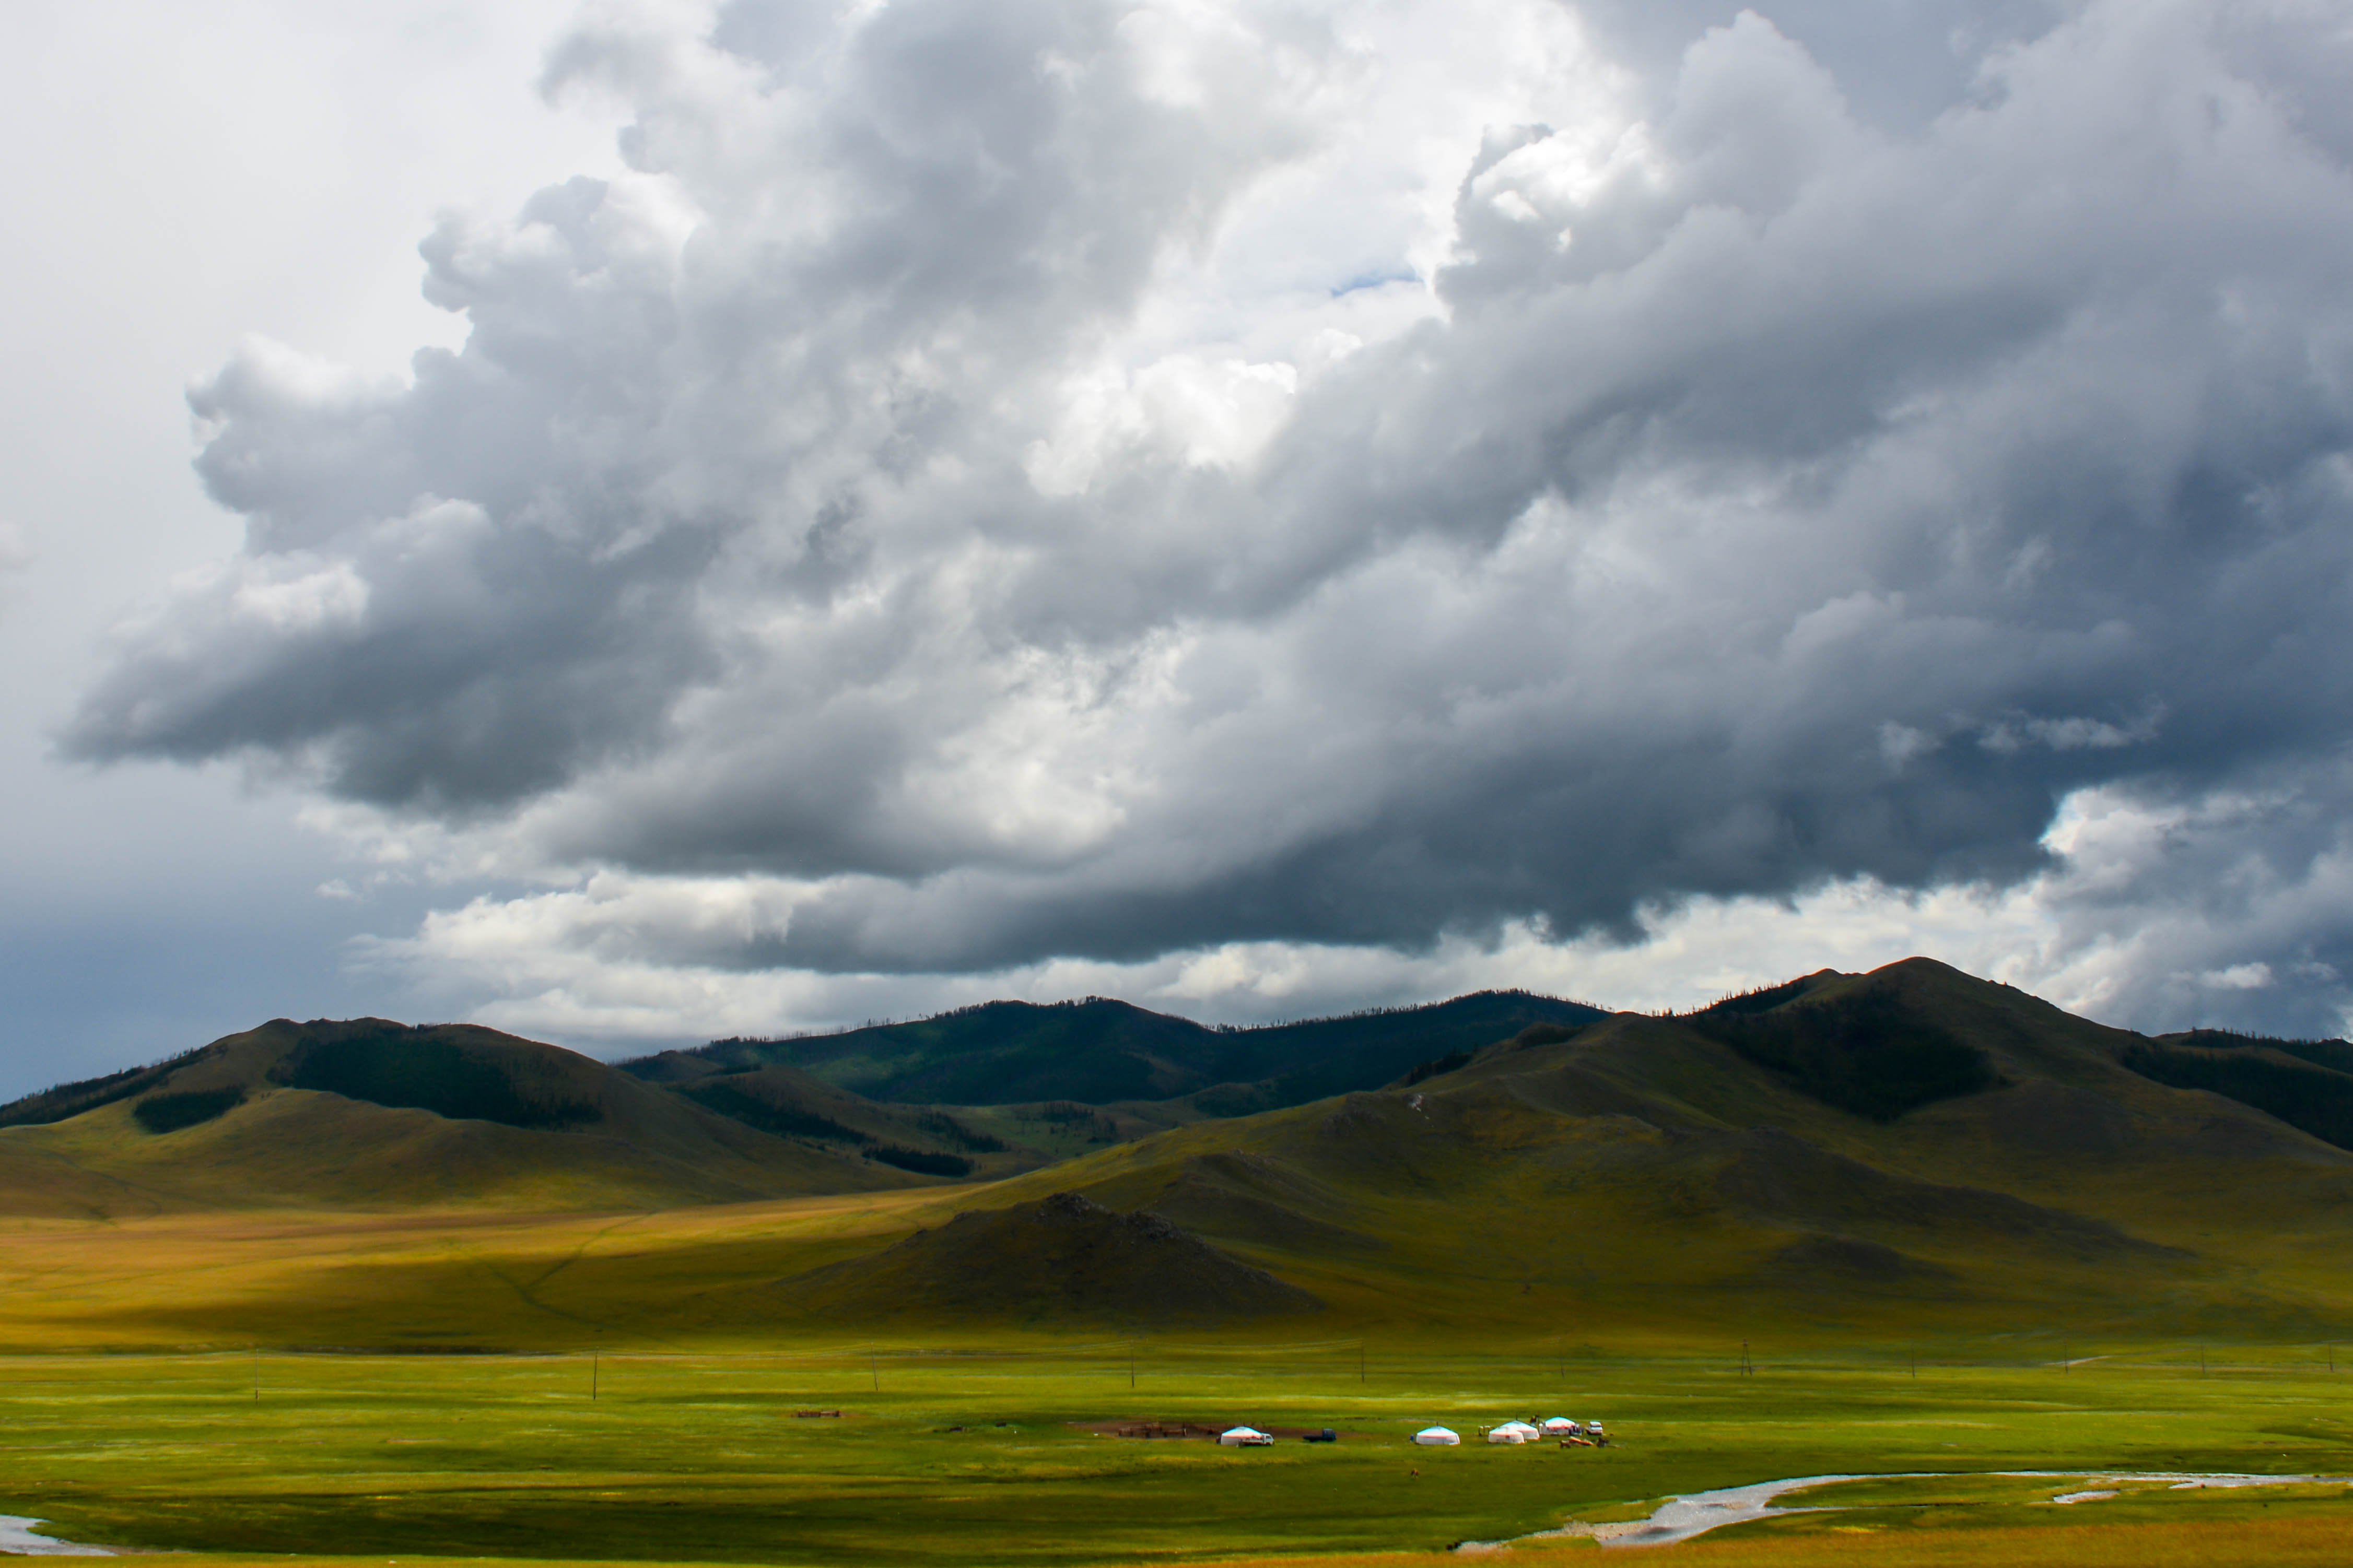 Human Rights, Environment, and Migration of Mongolia's Herders